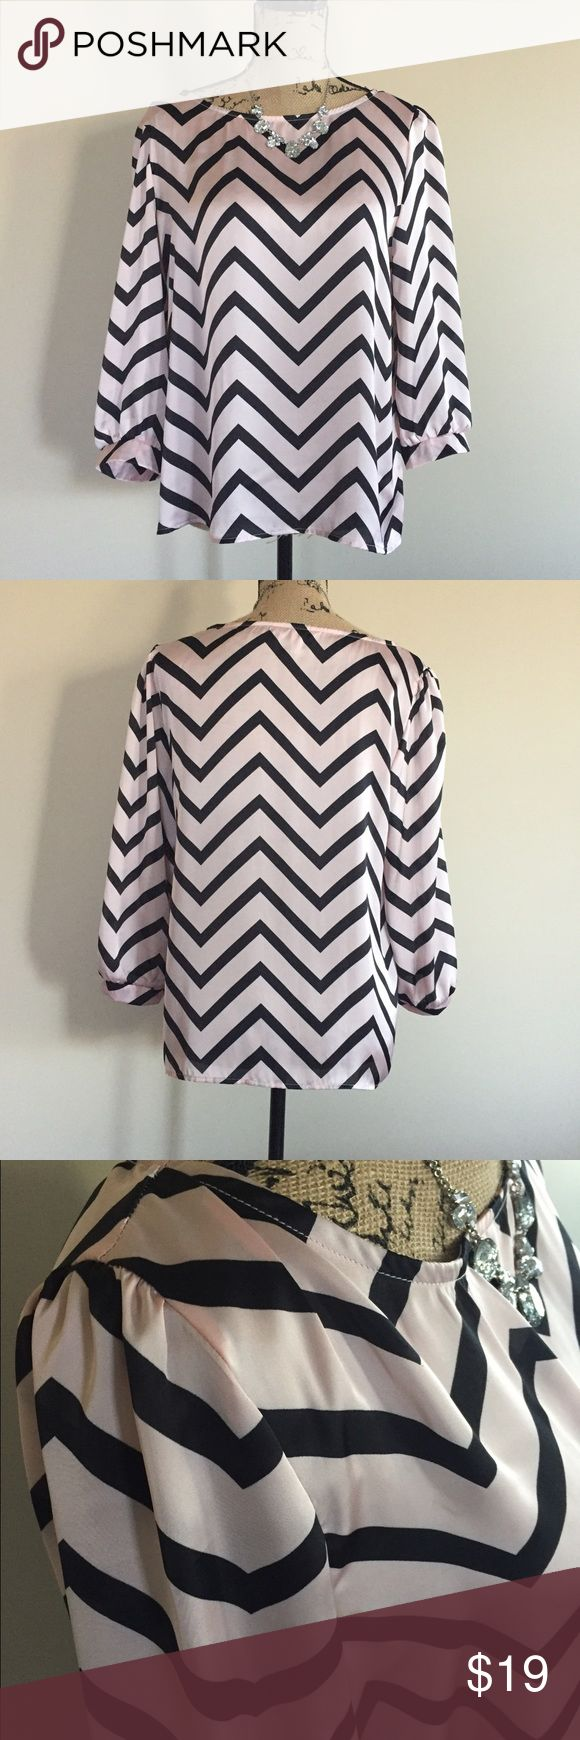 "🌸 Silky pink chevron top 🌸 Pretty pink chevron top by Speechless of Macy's. 3/4 sleeves with banded cuffs. 100% polyester, machine wash. Size L. EUC  Bust measures 20"", length 24"" Macy's Tops Blouses"